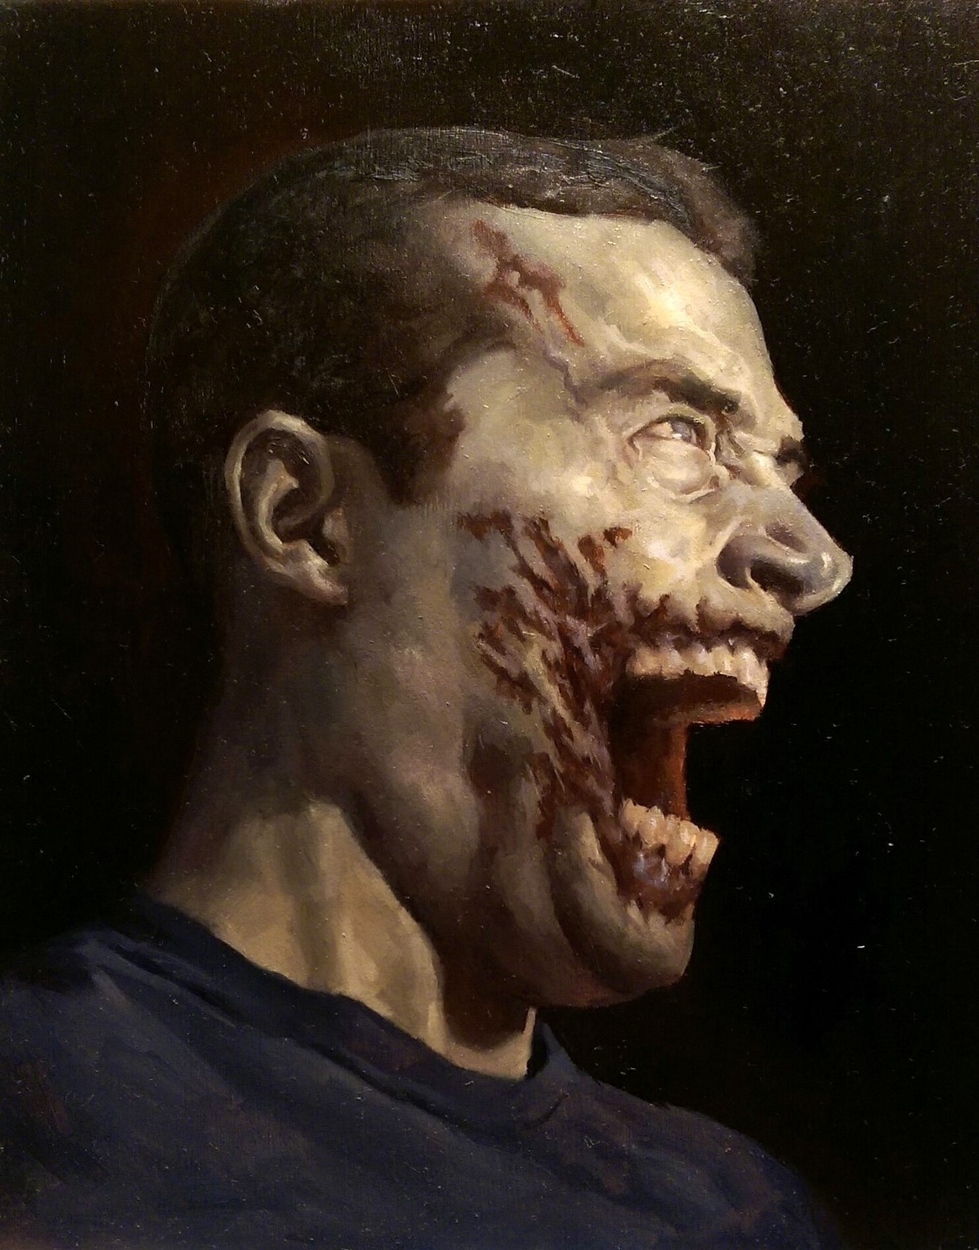 Zombie Self Portrait Artwork by Matt Smith